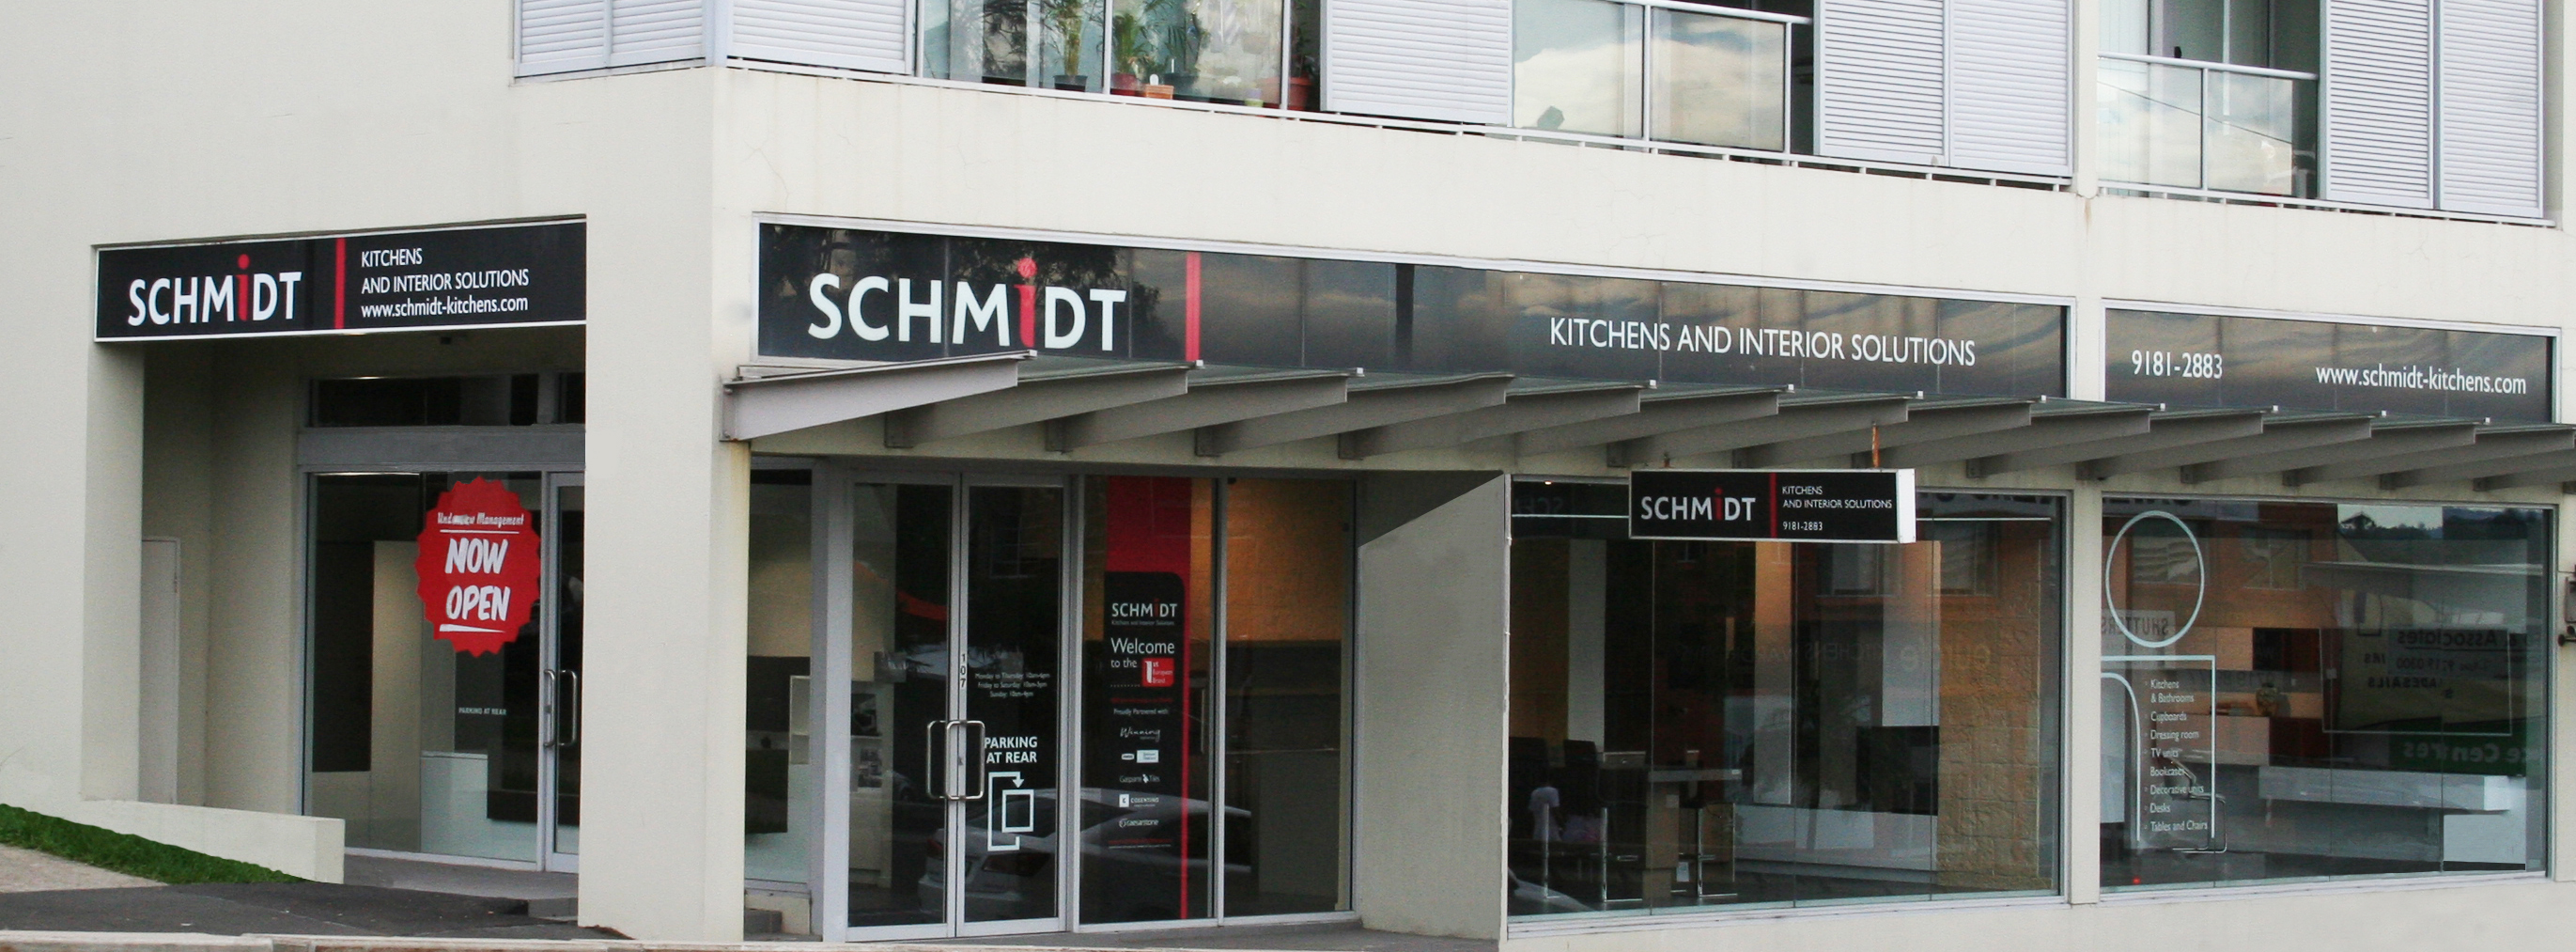 Schmidt Kitchens and Interior Solutions